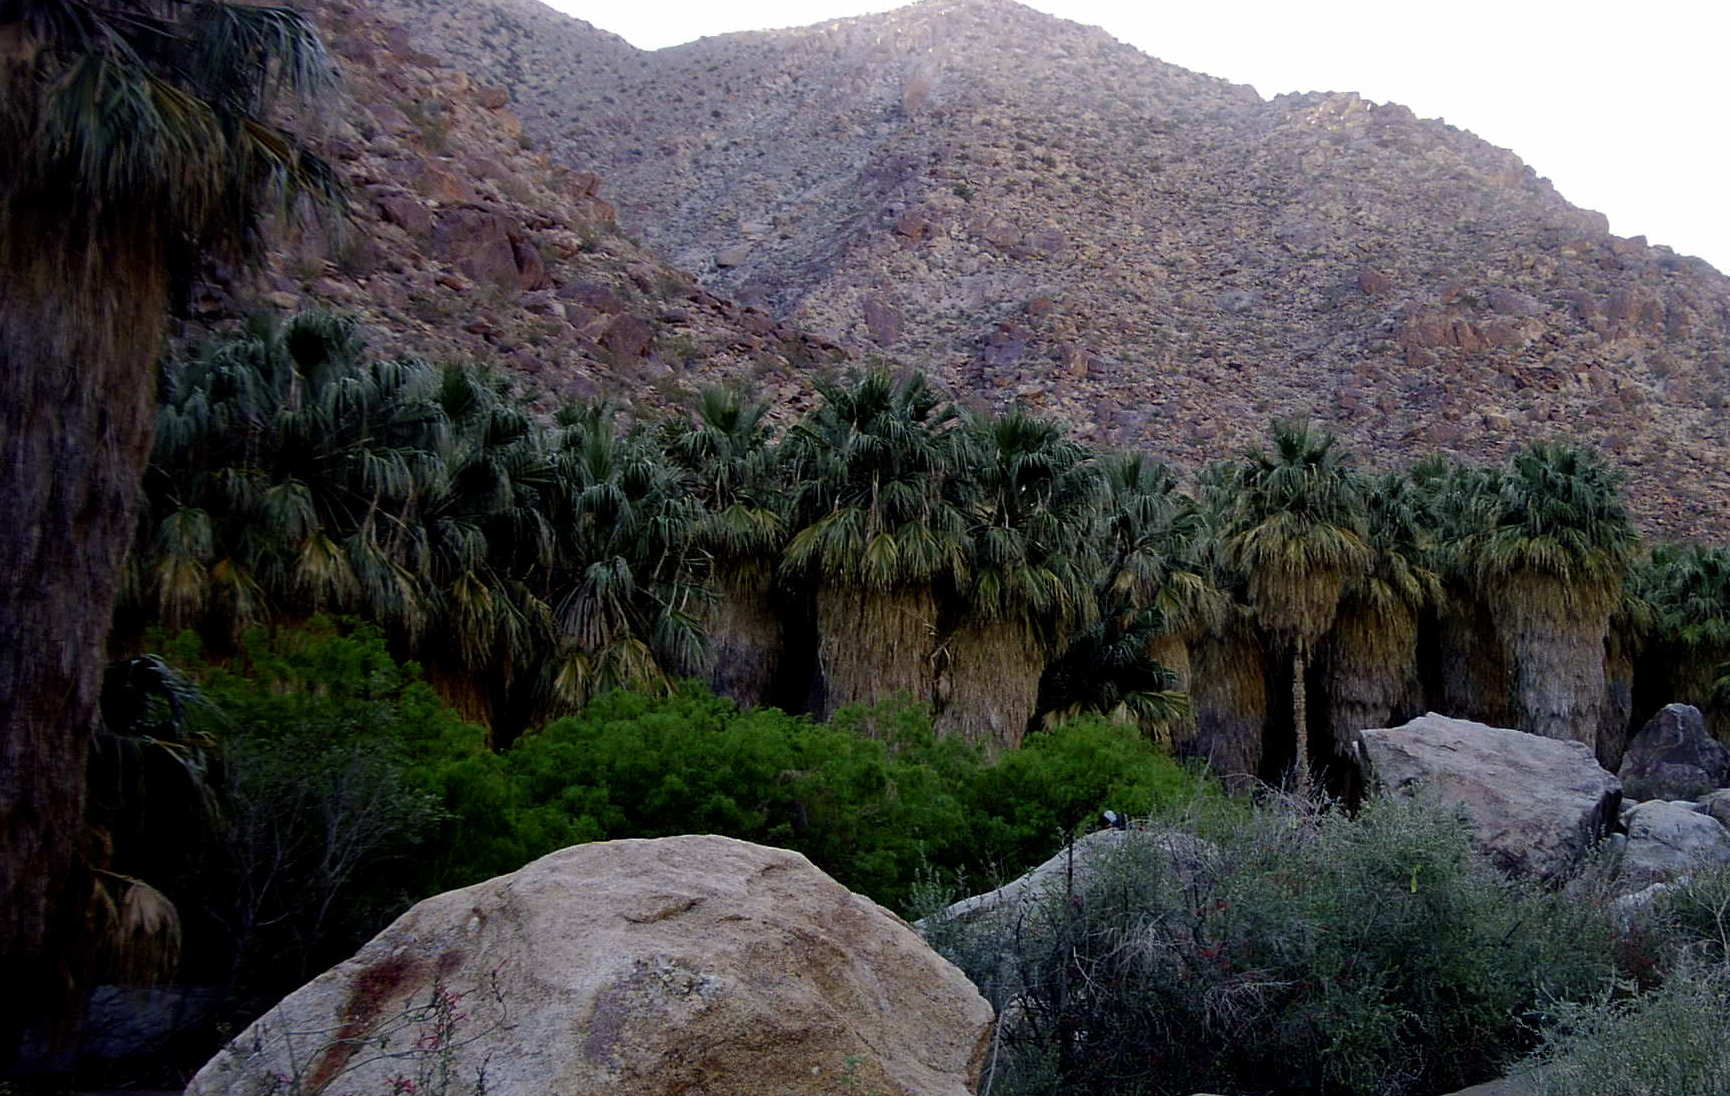 Current Image is photos/Palm_Canyon_Oasis.jpg Clicking here will display Brent_and_HALF_DOME.jpg